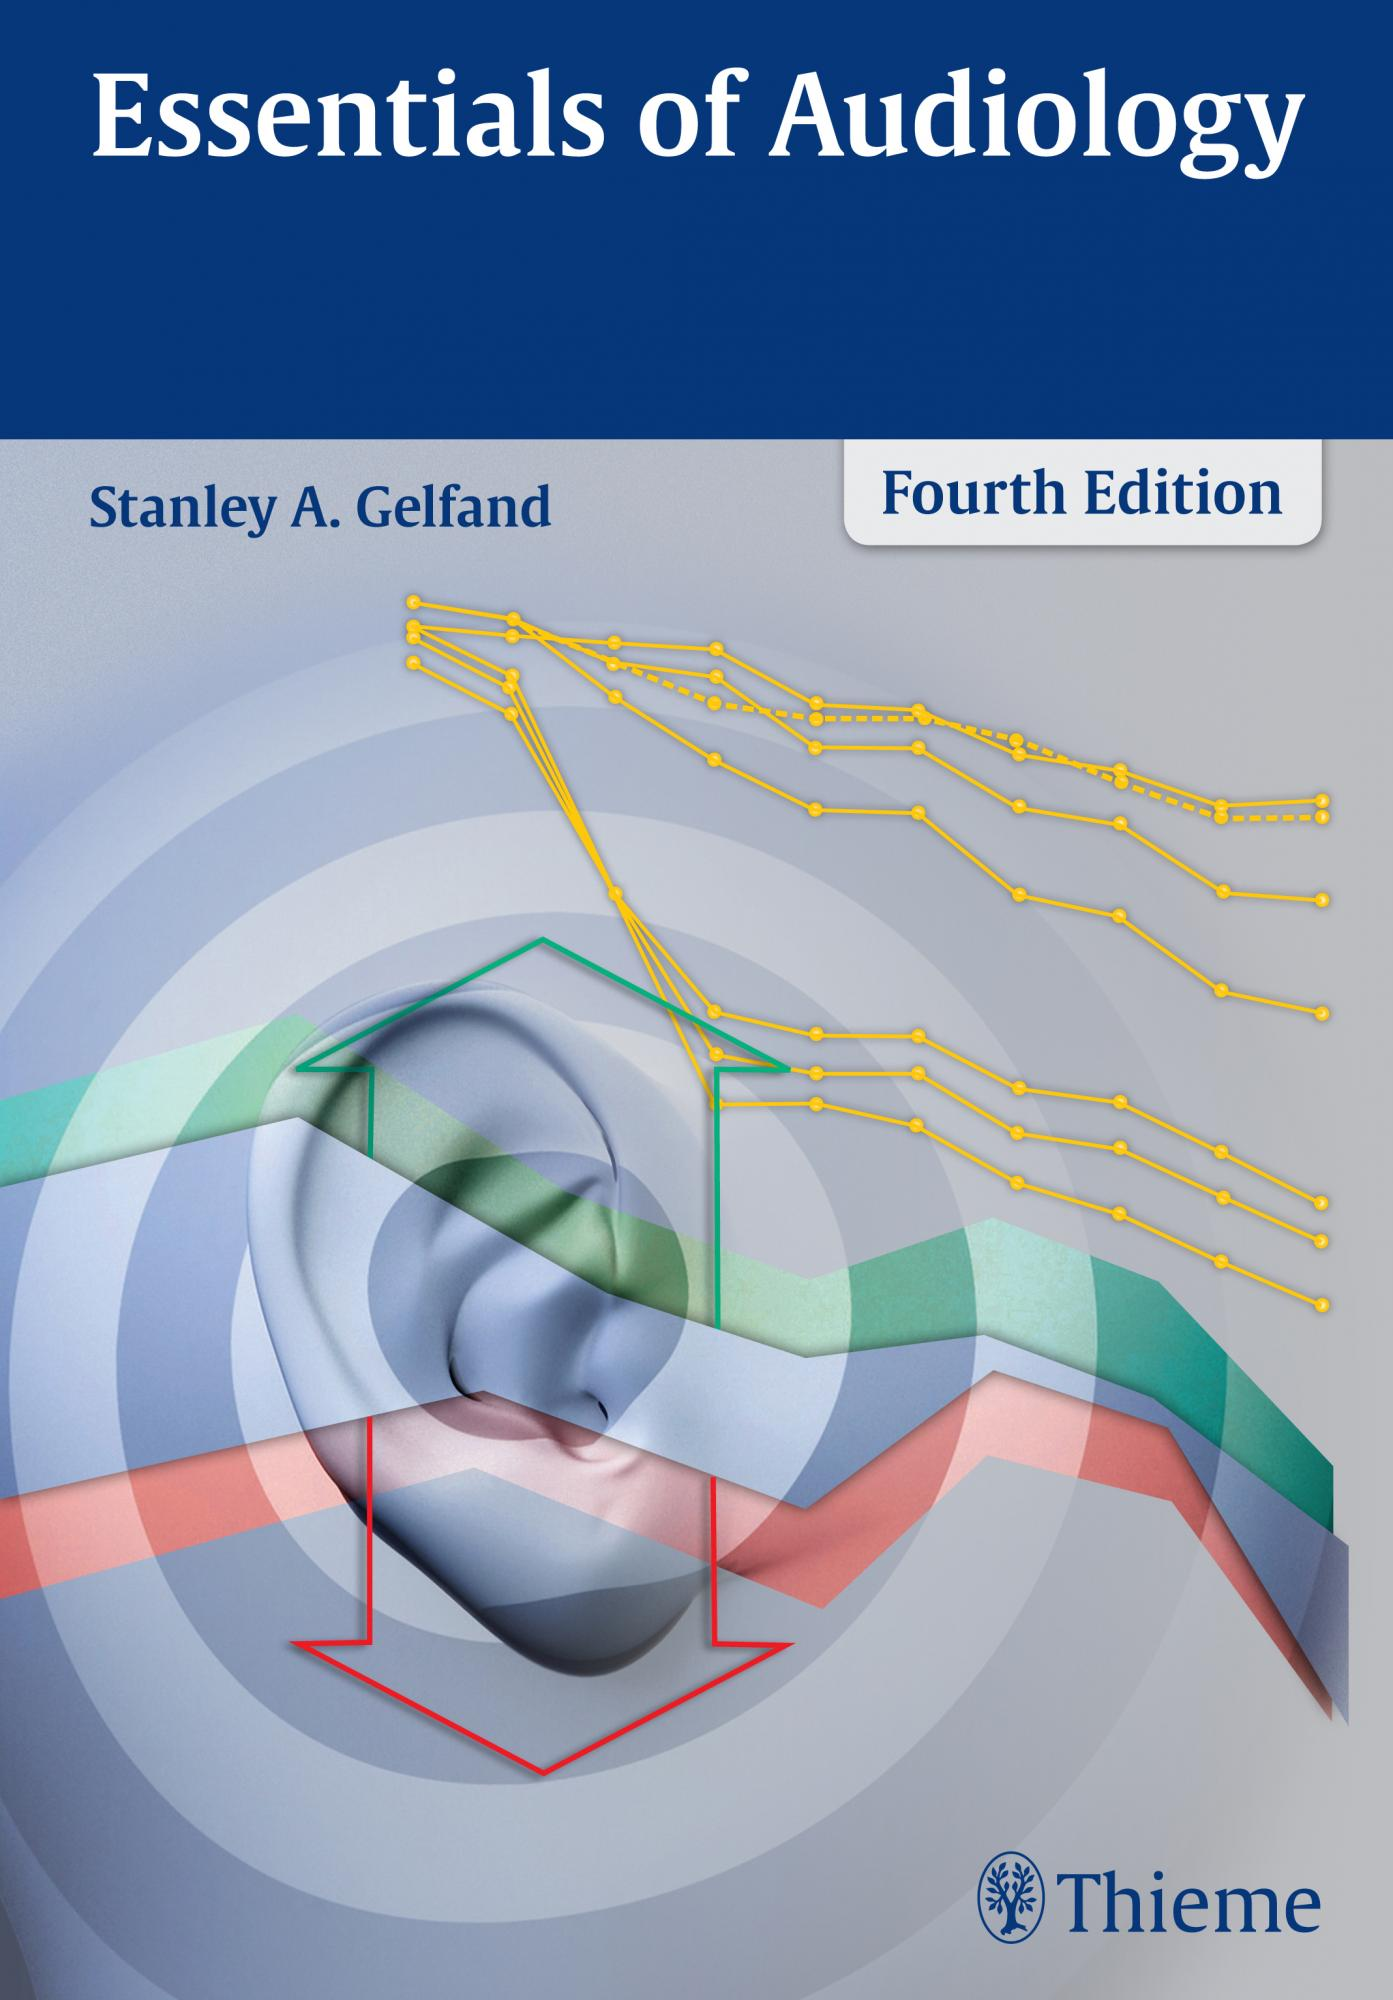 Essentials of Audiology, 4th Edition